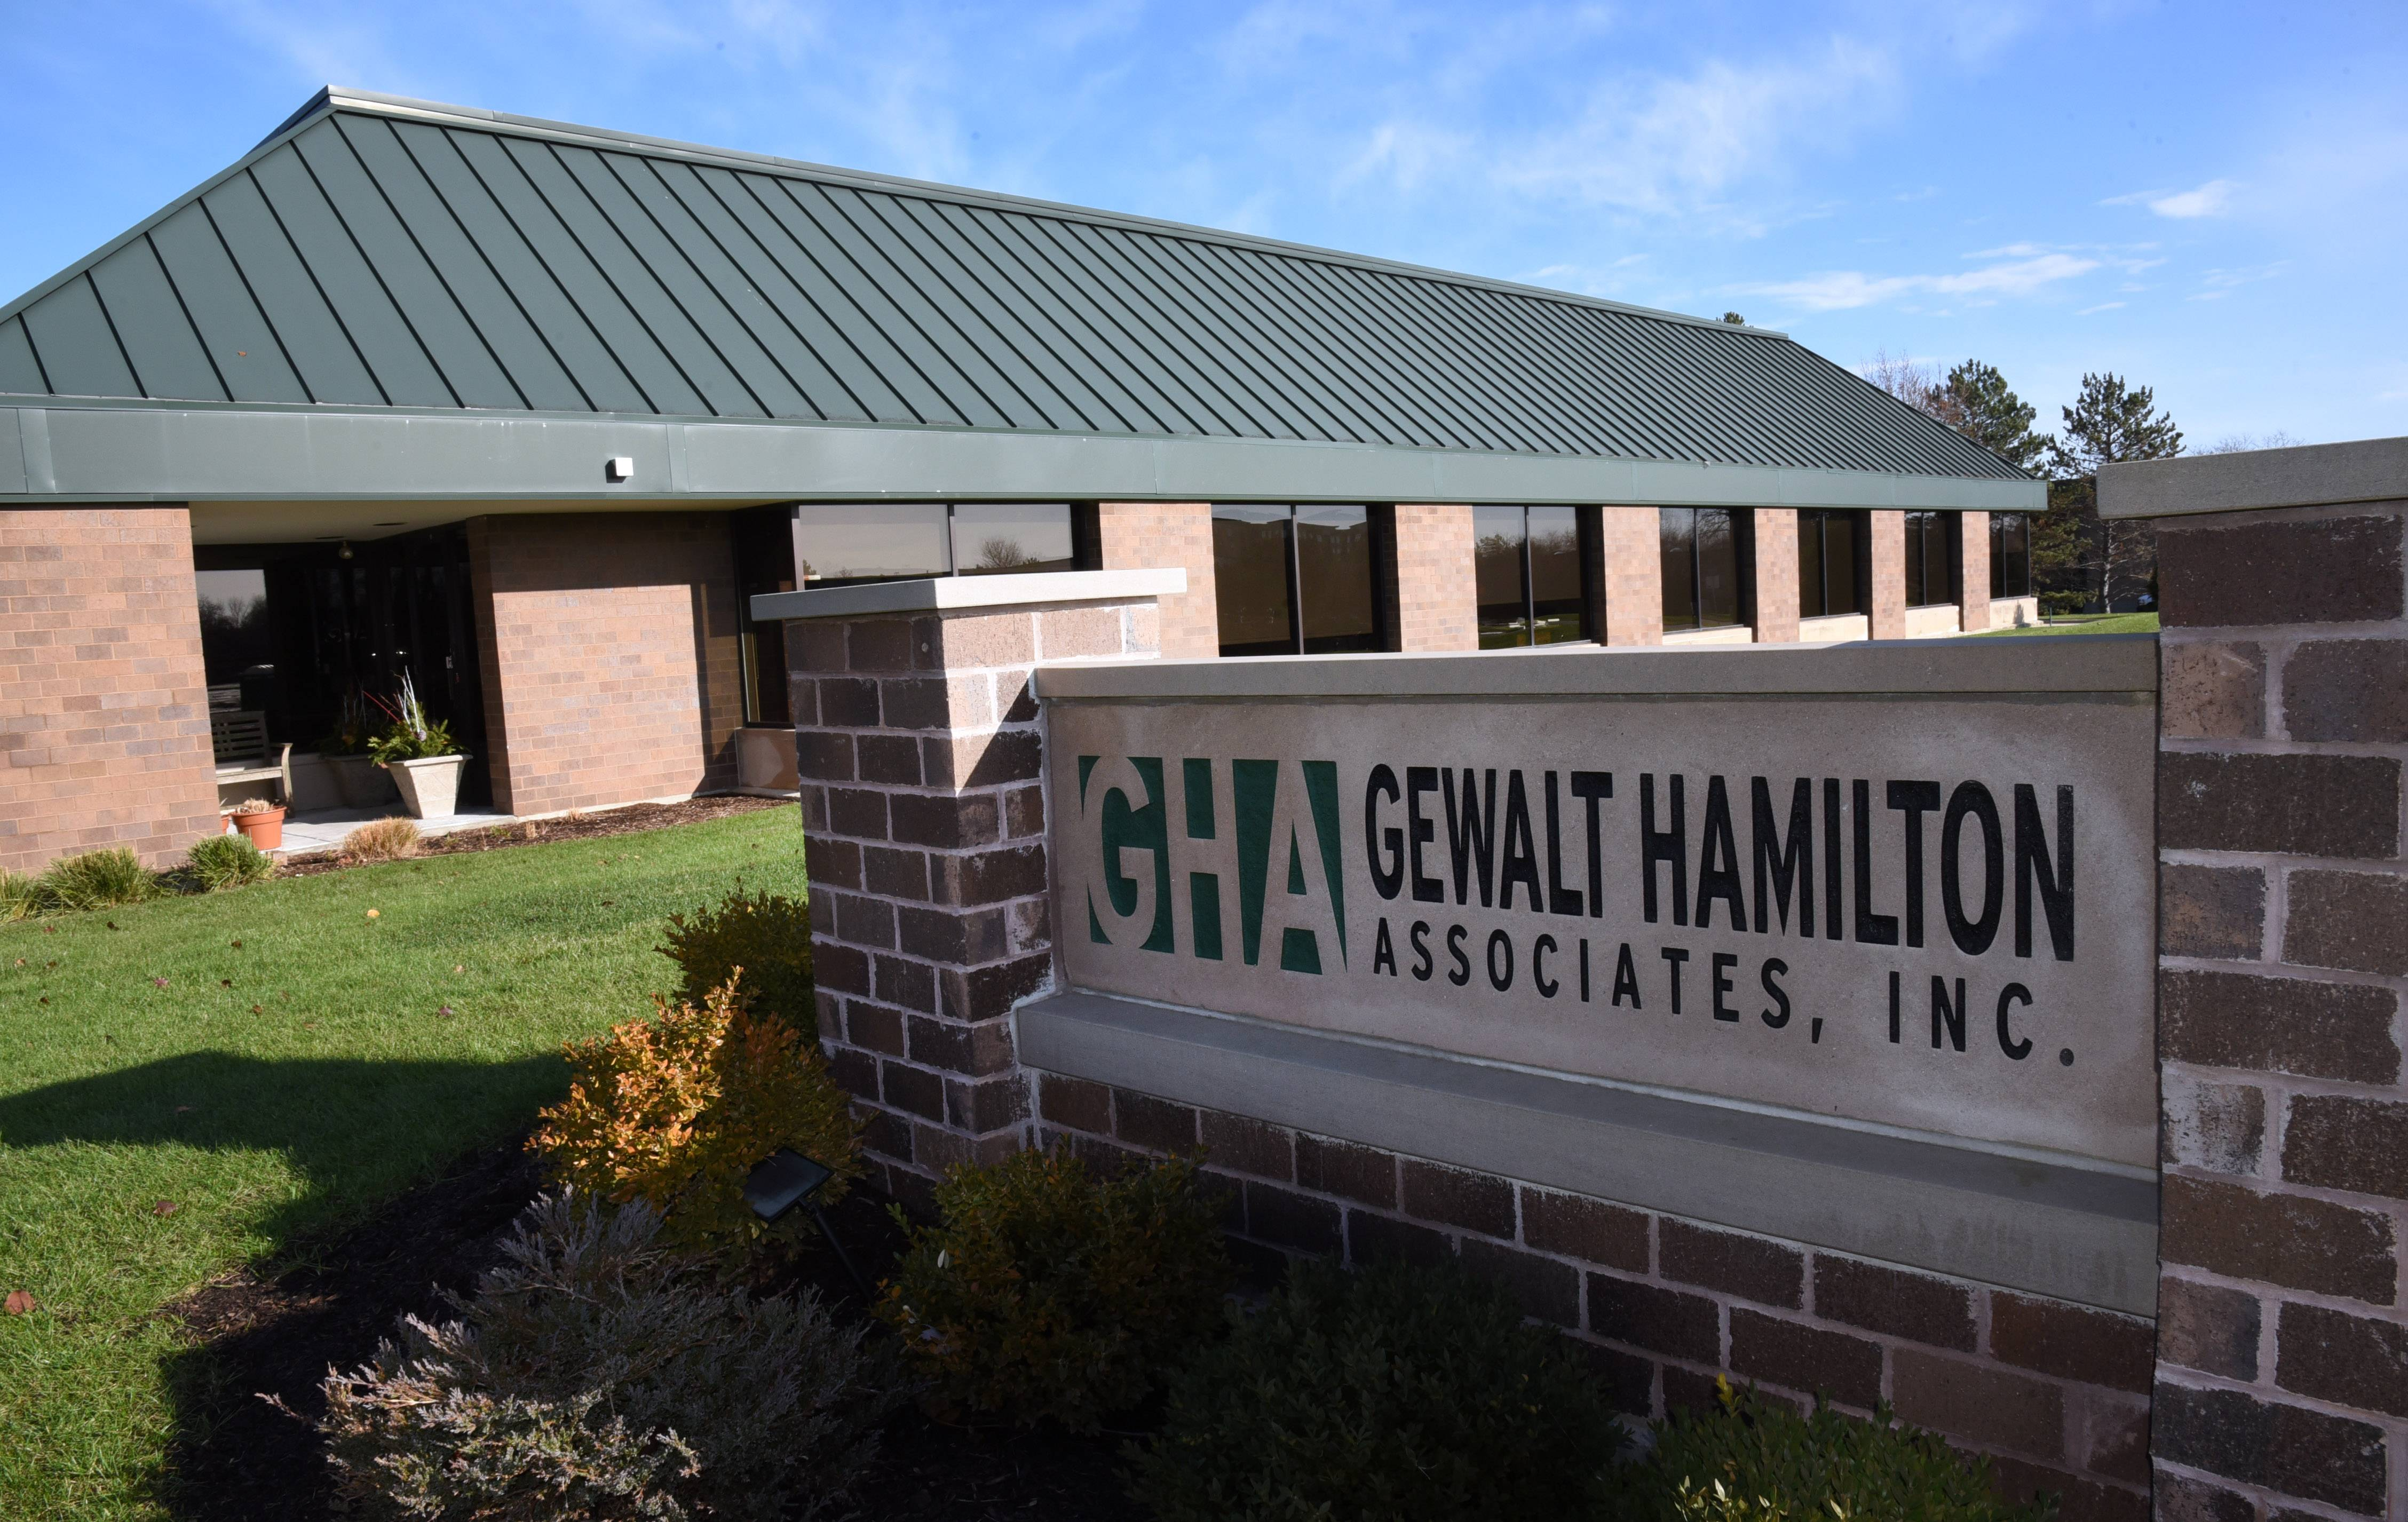 Gewalt Hamilton Associates Inc. in Vernon Hills celebrates 35 years of business.